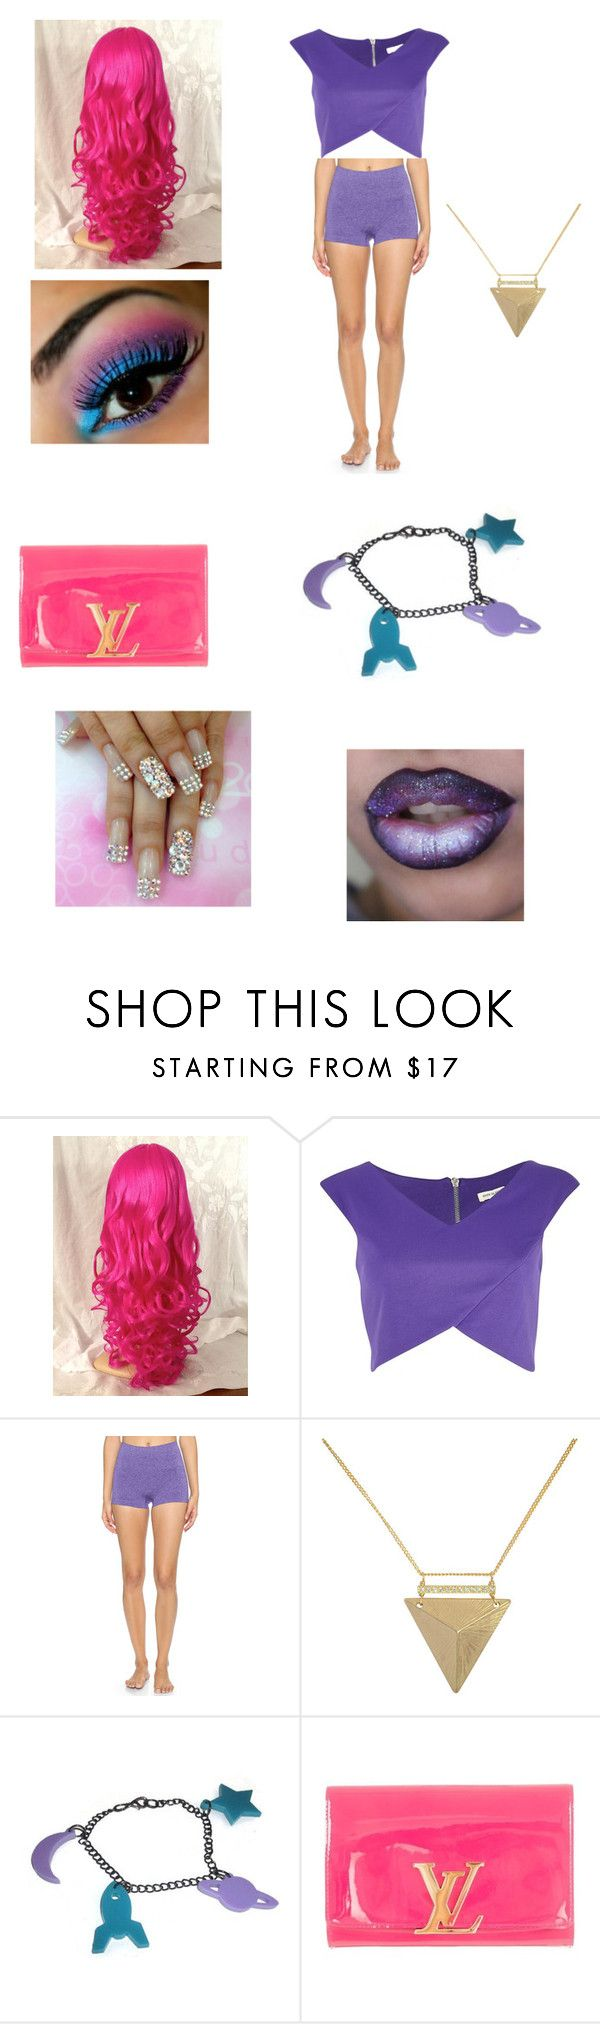 """""""Teen titans go star fire outfit"""" by samgurl9 ❤ liked on Polyvore featuring beauty, River Island, SPANX, Liz Law and Louis Vuitton"""